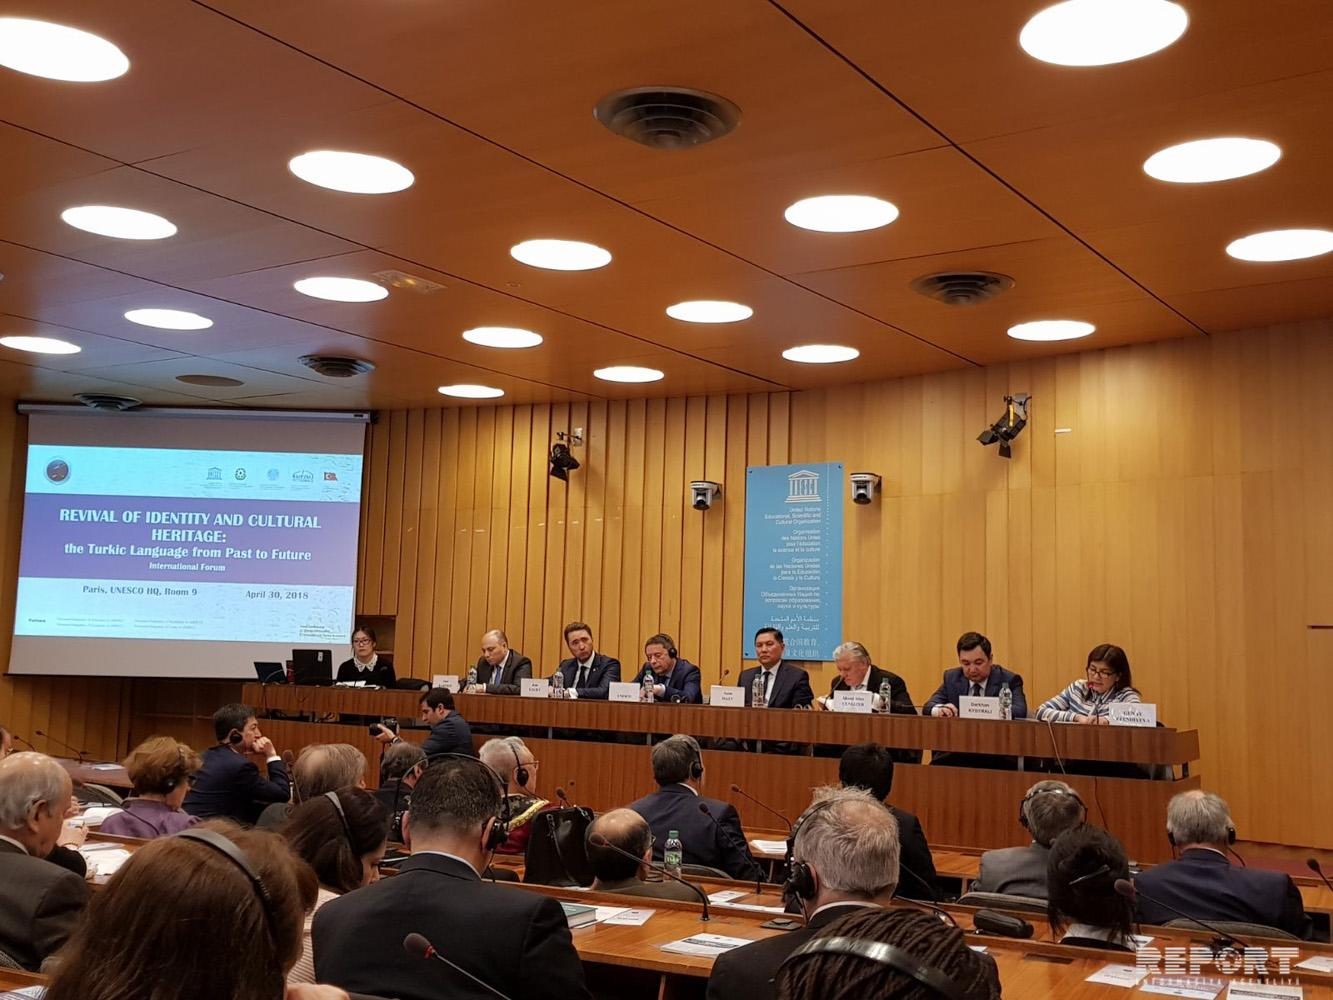 Paris hosts Revival of Identity and Cultural Heritage: Turkic Language from Past to Future forum